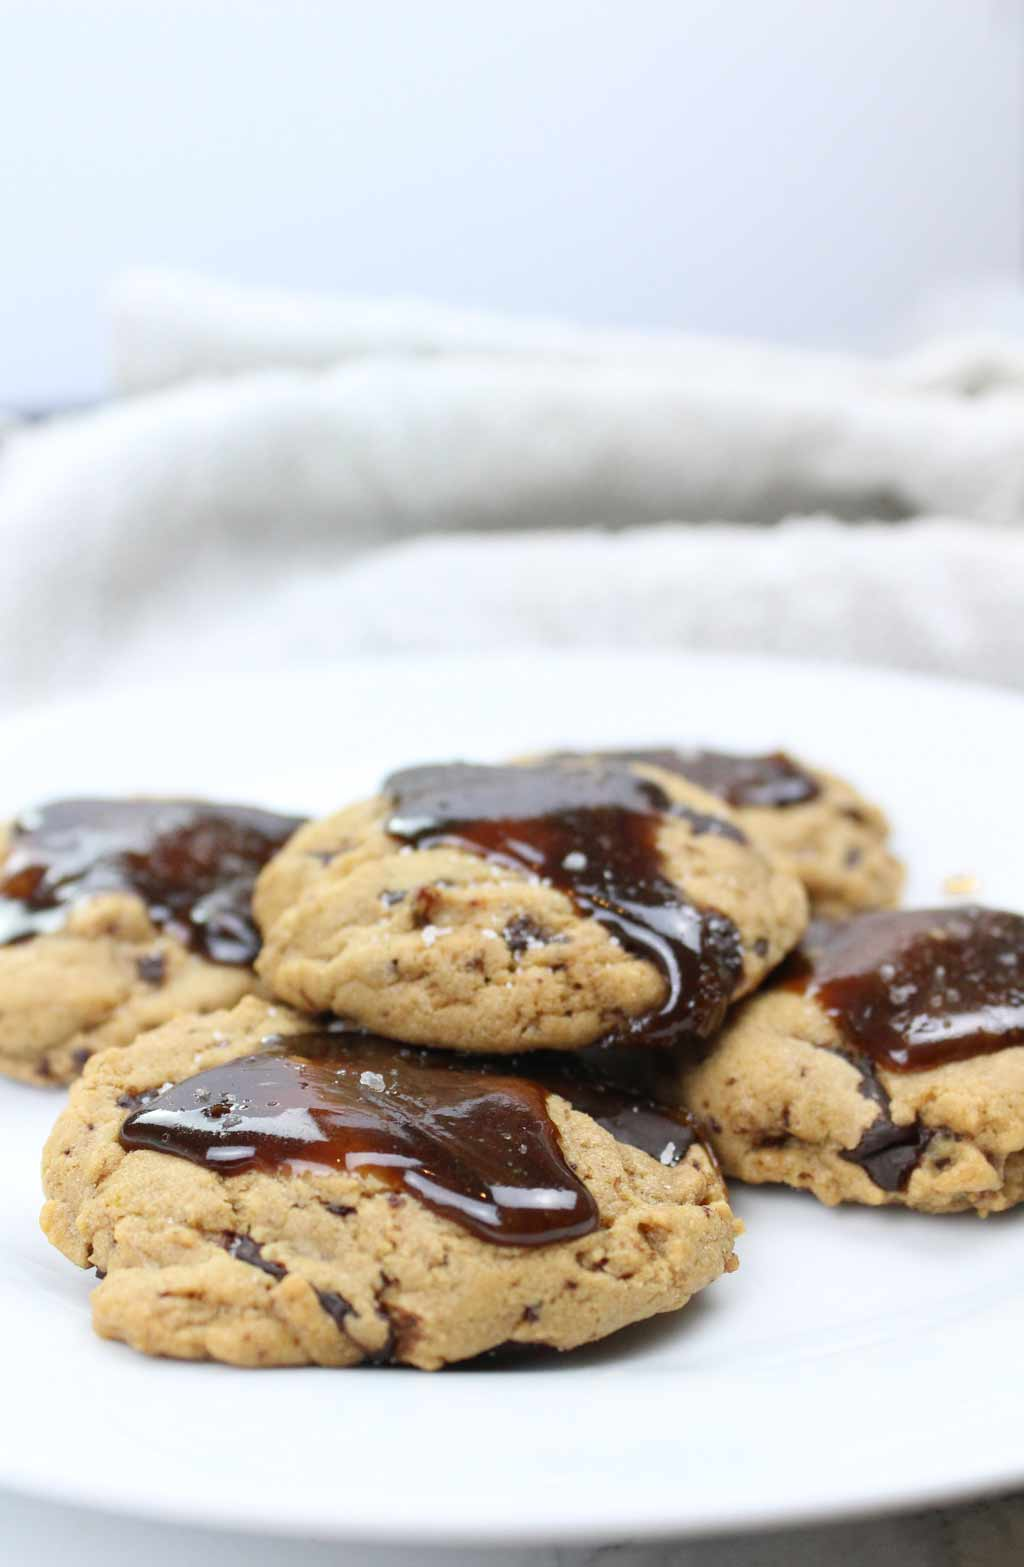 a plate of toffee chocolate chip cookies